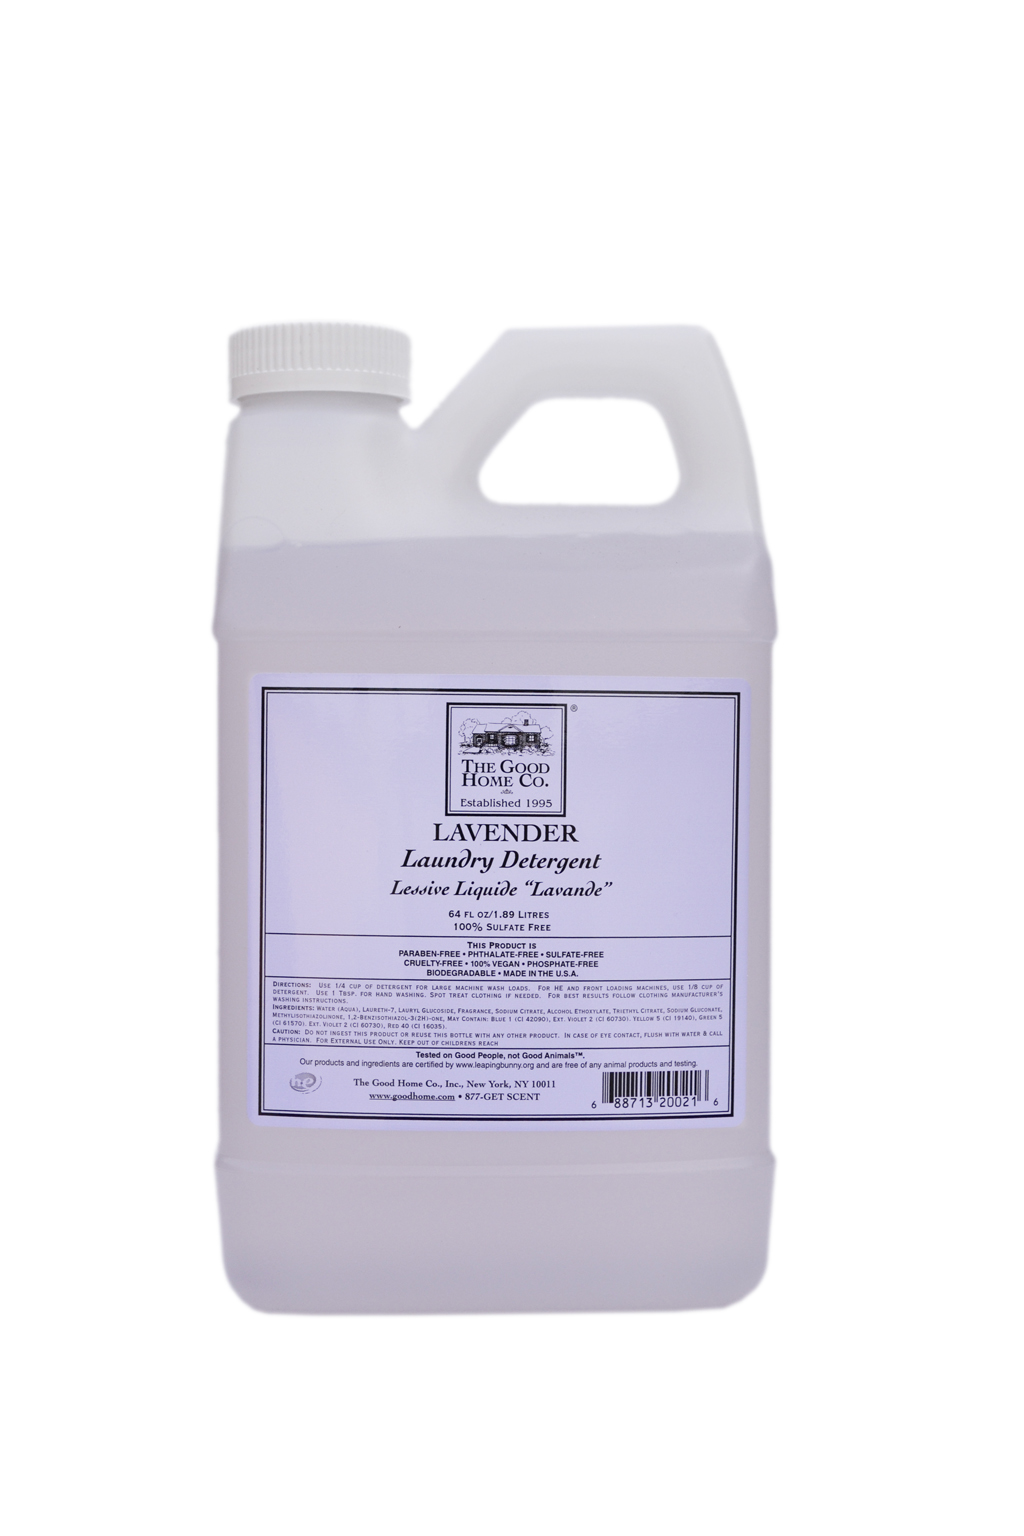 Laundry Detergent with the natural scent of lavender